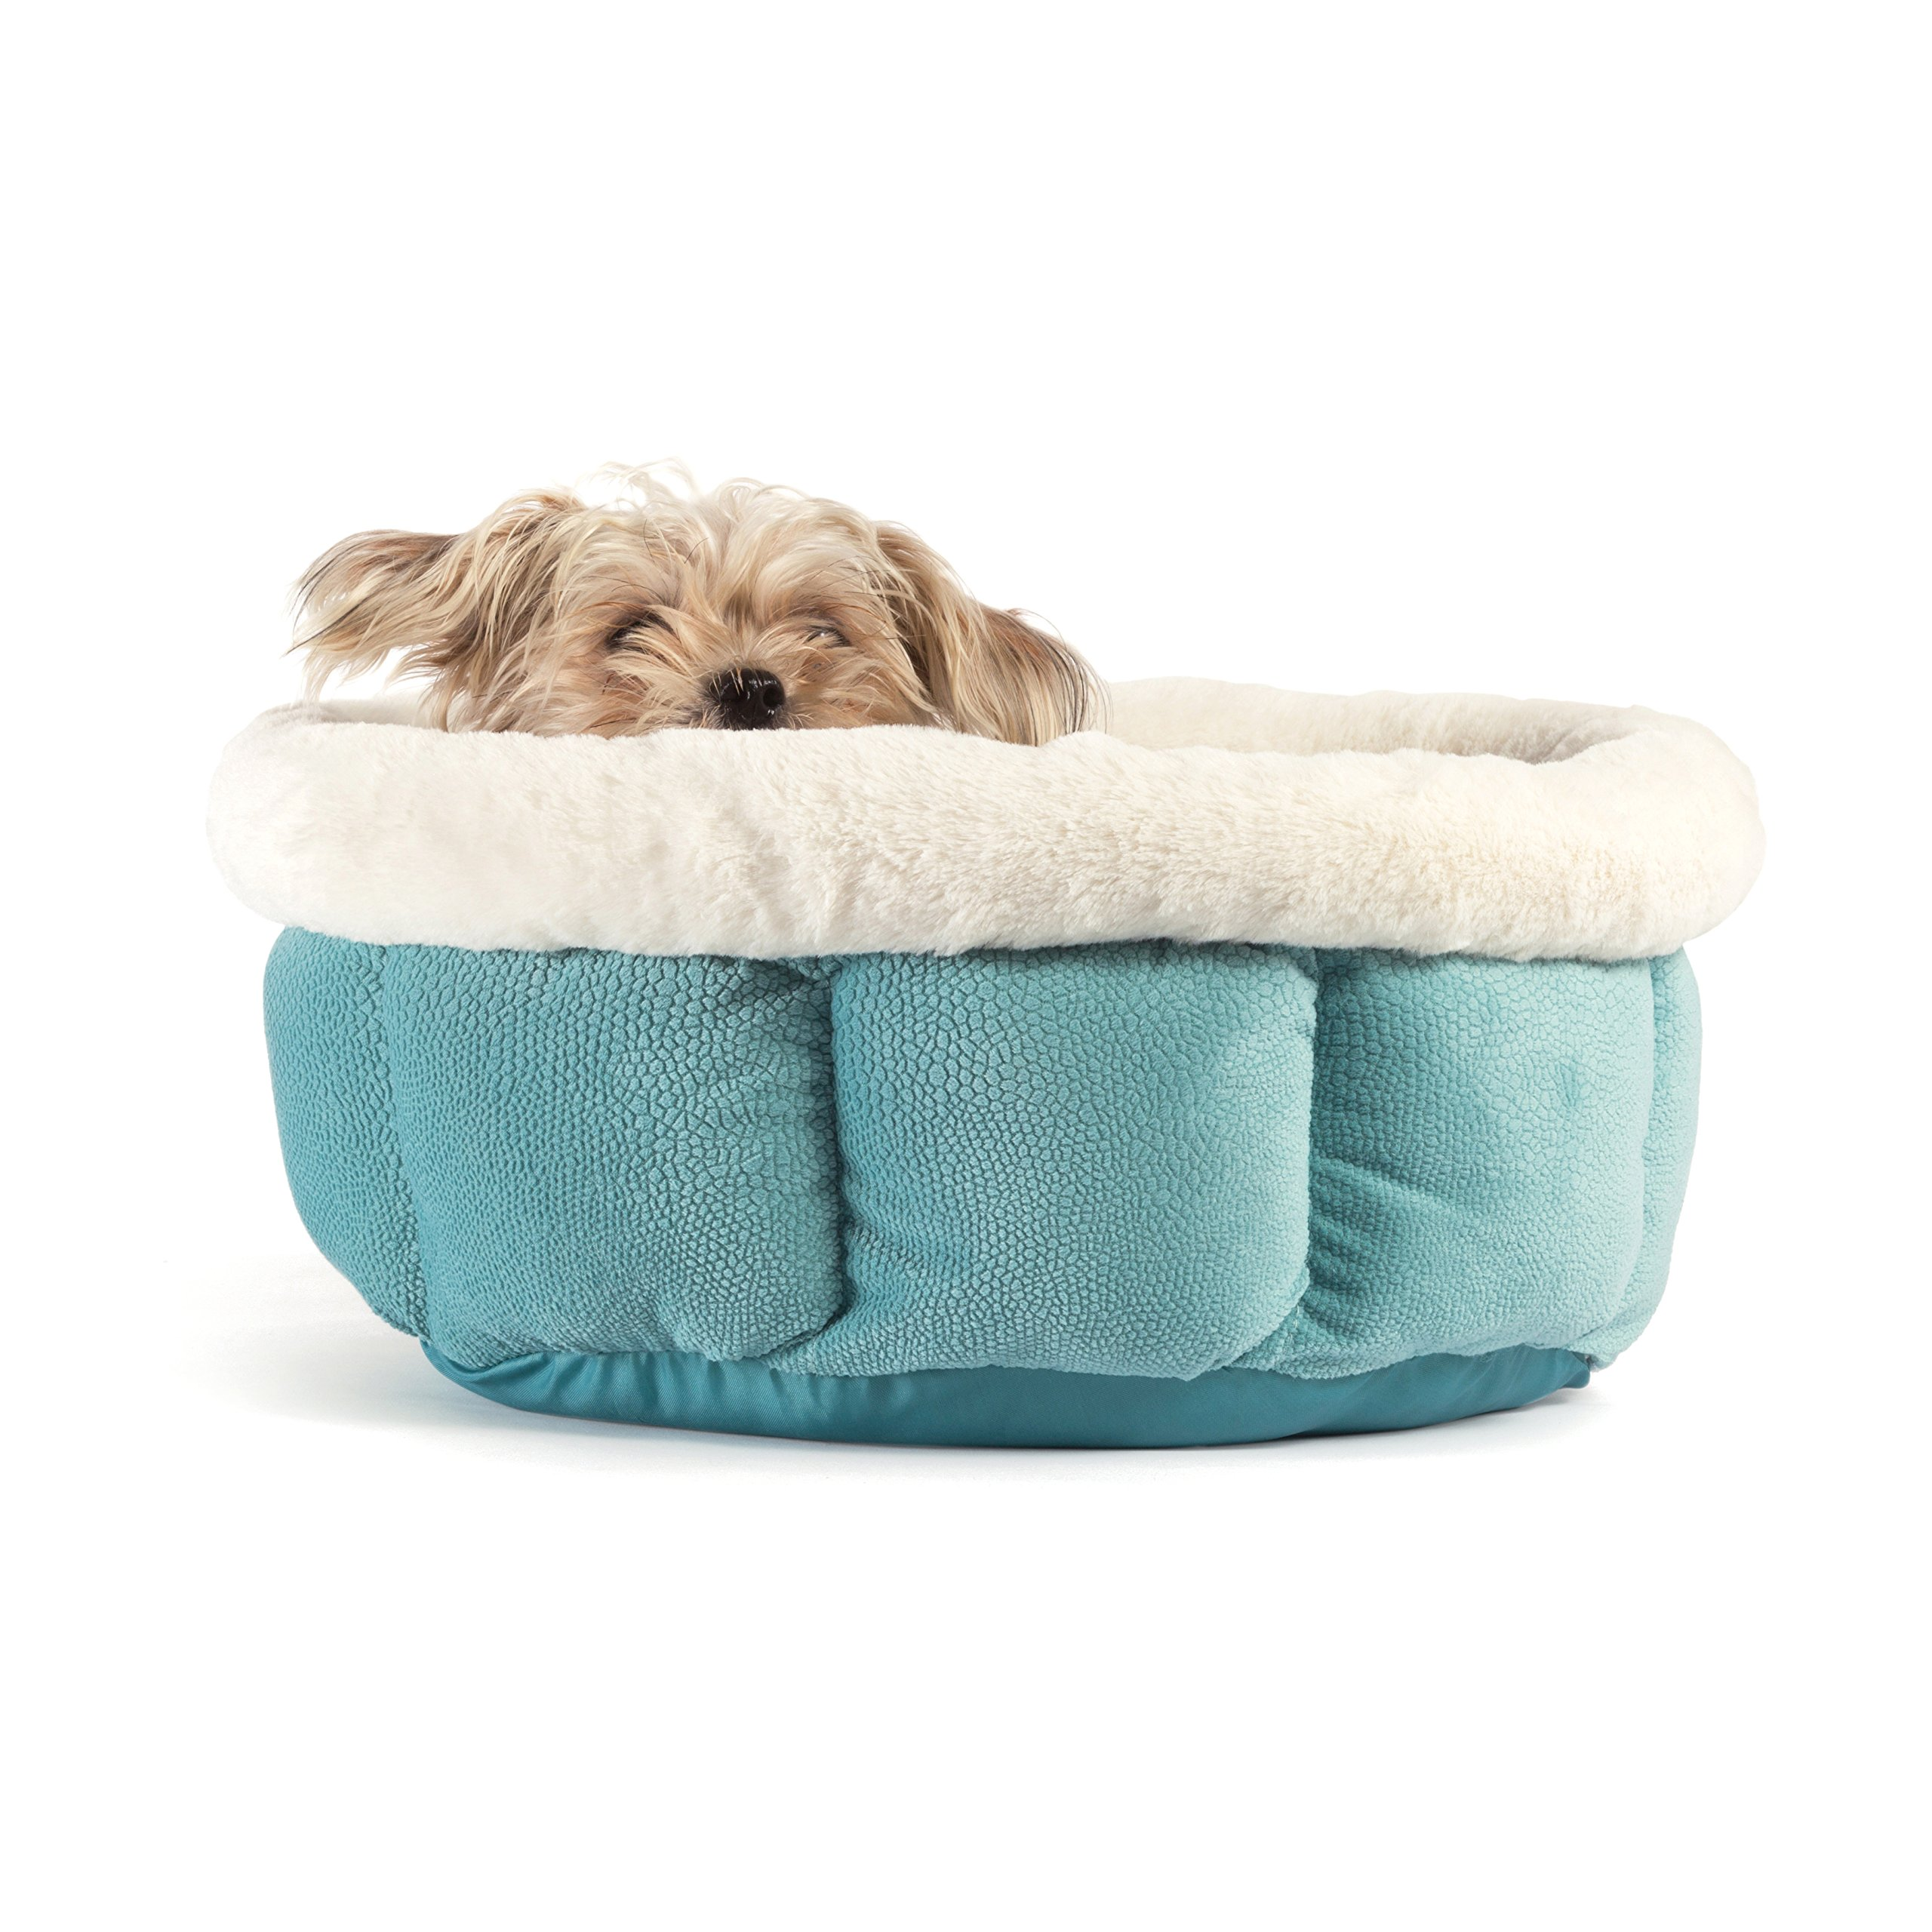 Best Friends by Sheri Small Cuddle Cup - Cozy, Comfortable Cat and Dog House Bed - High-Walls for Improved Sleep, TidePool by Best Friends by Sheri (Image #3)